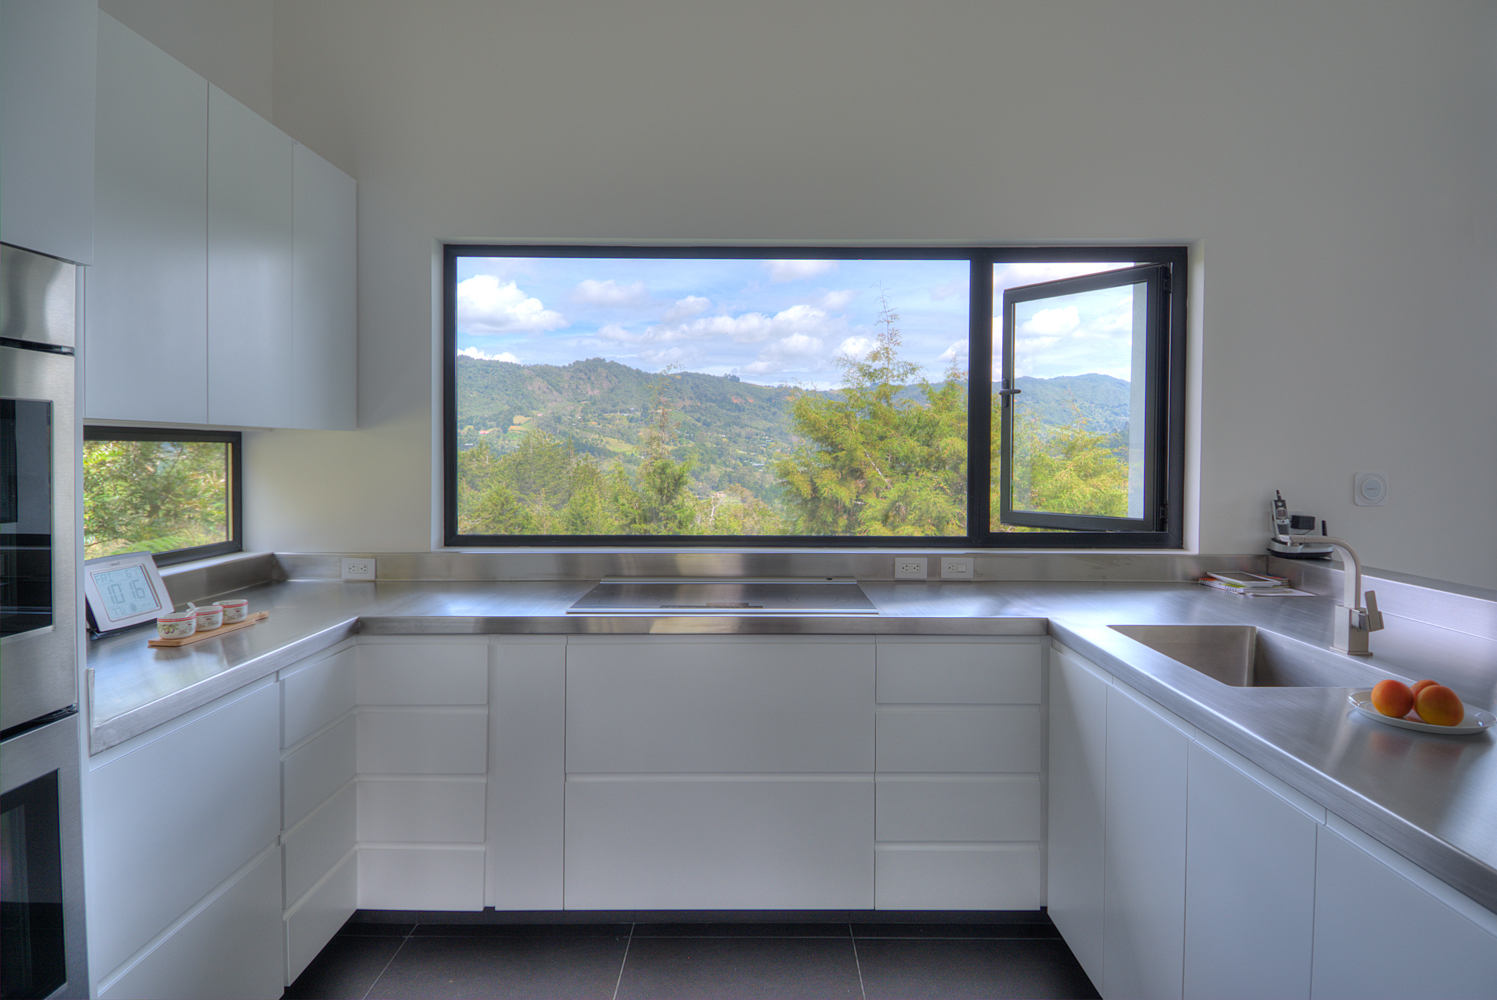 Kitchen with views onto the mountains